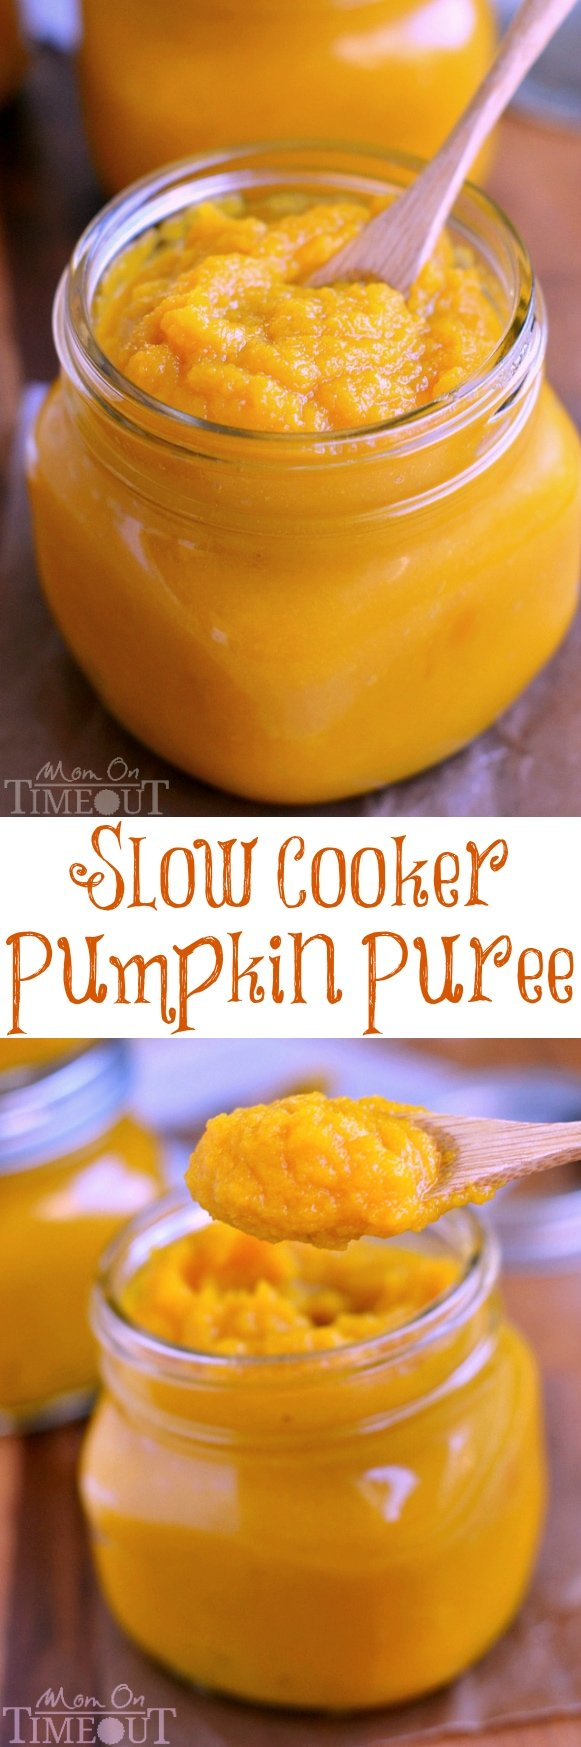 An easy step-by-step tutorial showing how to make Slow Cooker Pumpkin Puree - so, so much better than store bought! | MomOnTimeout.com | #slow #cooker #crockpot #DIY #Thanksgiving #Christmas #pumpkin